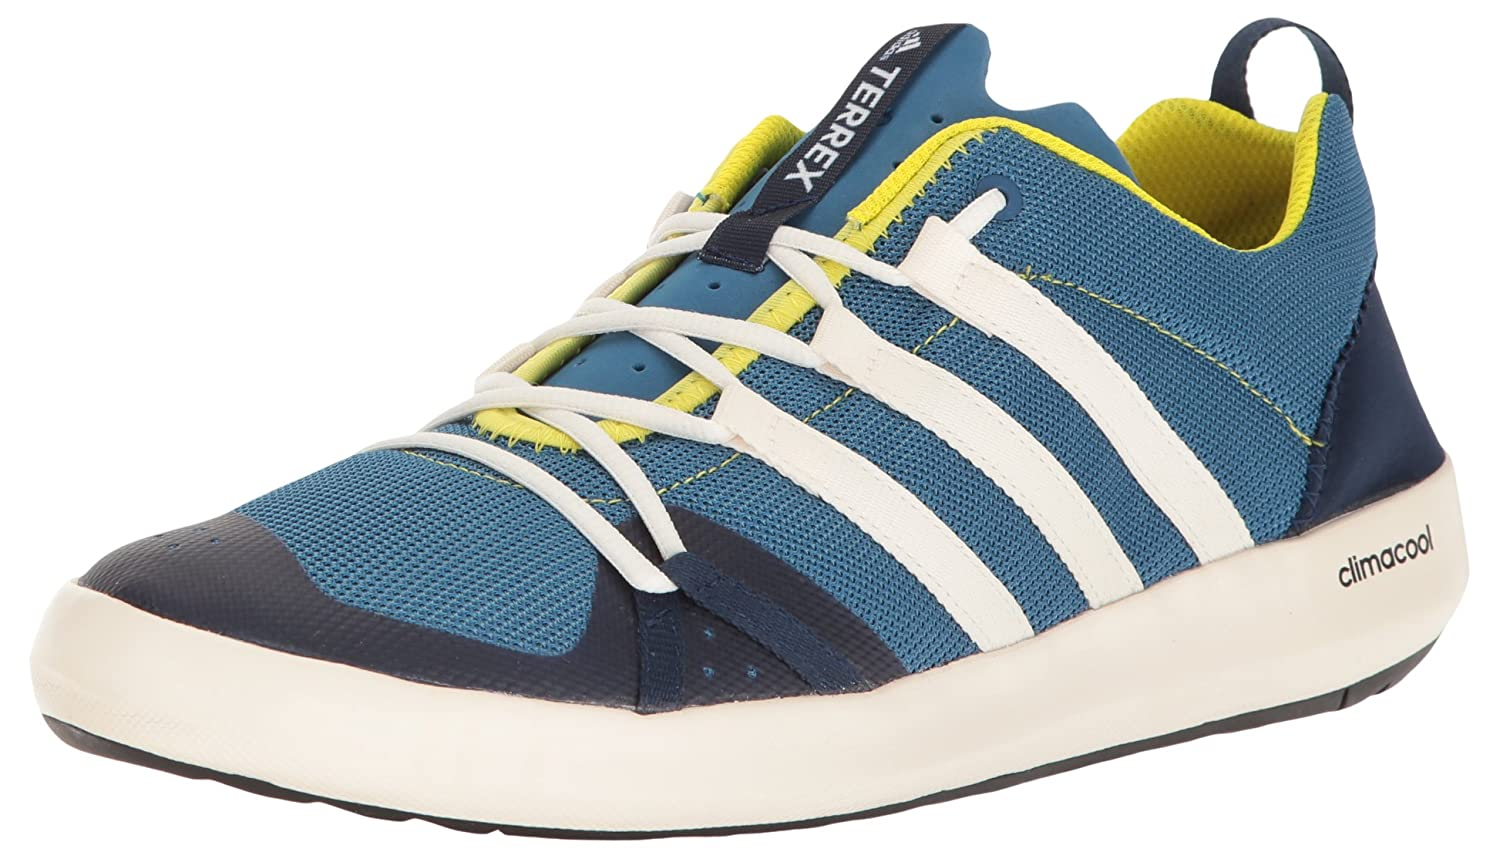 079a5f33f158a8 Adidas Outdoor Men's Terrex Climacool Boat Water Shoe, Core Blue/Chalk  White/Bright Yellow, 6.5 M US: Buy Online at Low Prices in India - Amazon.in